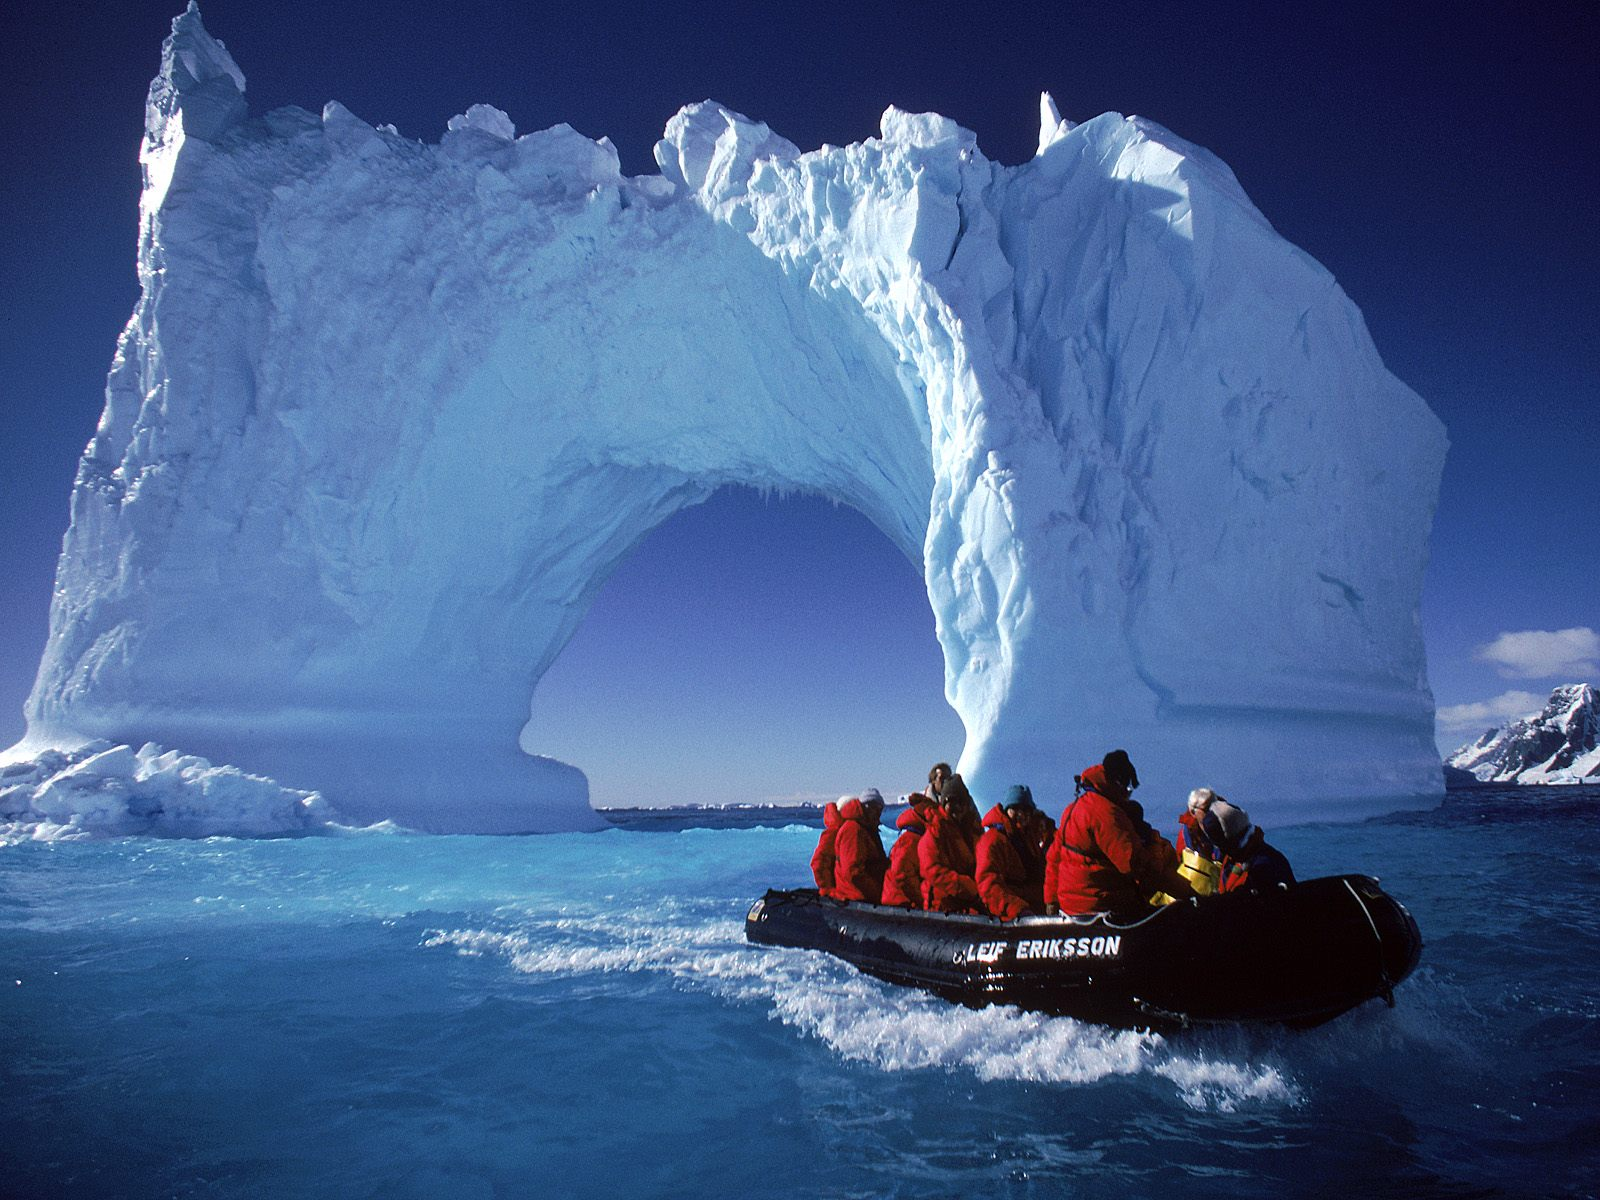 Antarctica Travel Wallpapers 4194 Wallpaper Wallpaper hd 1600x1200